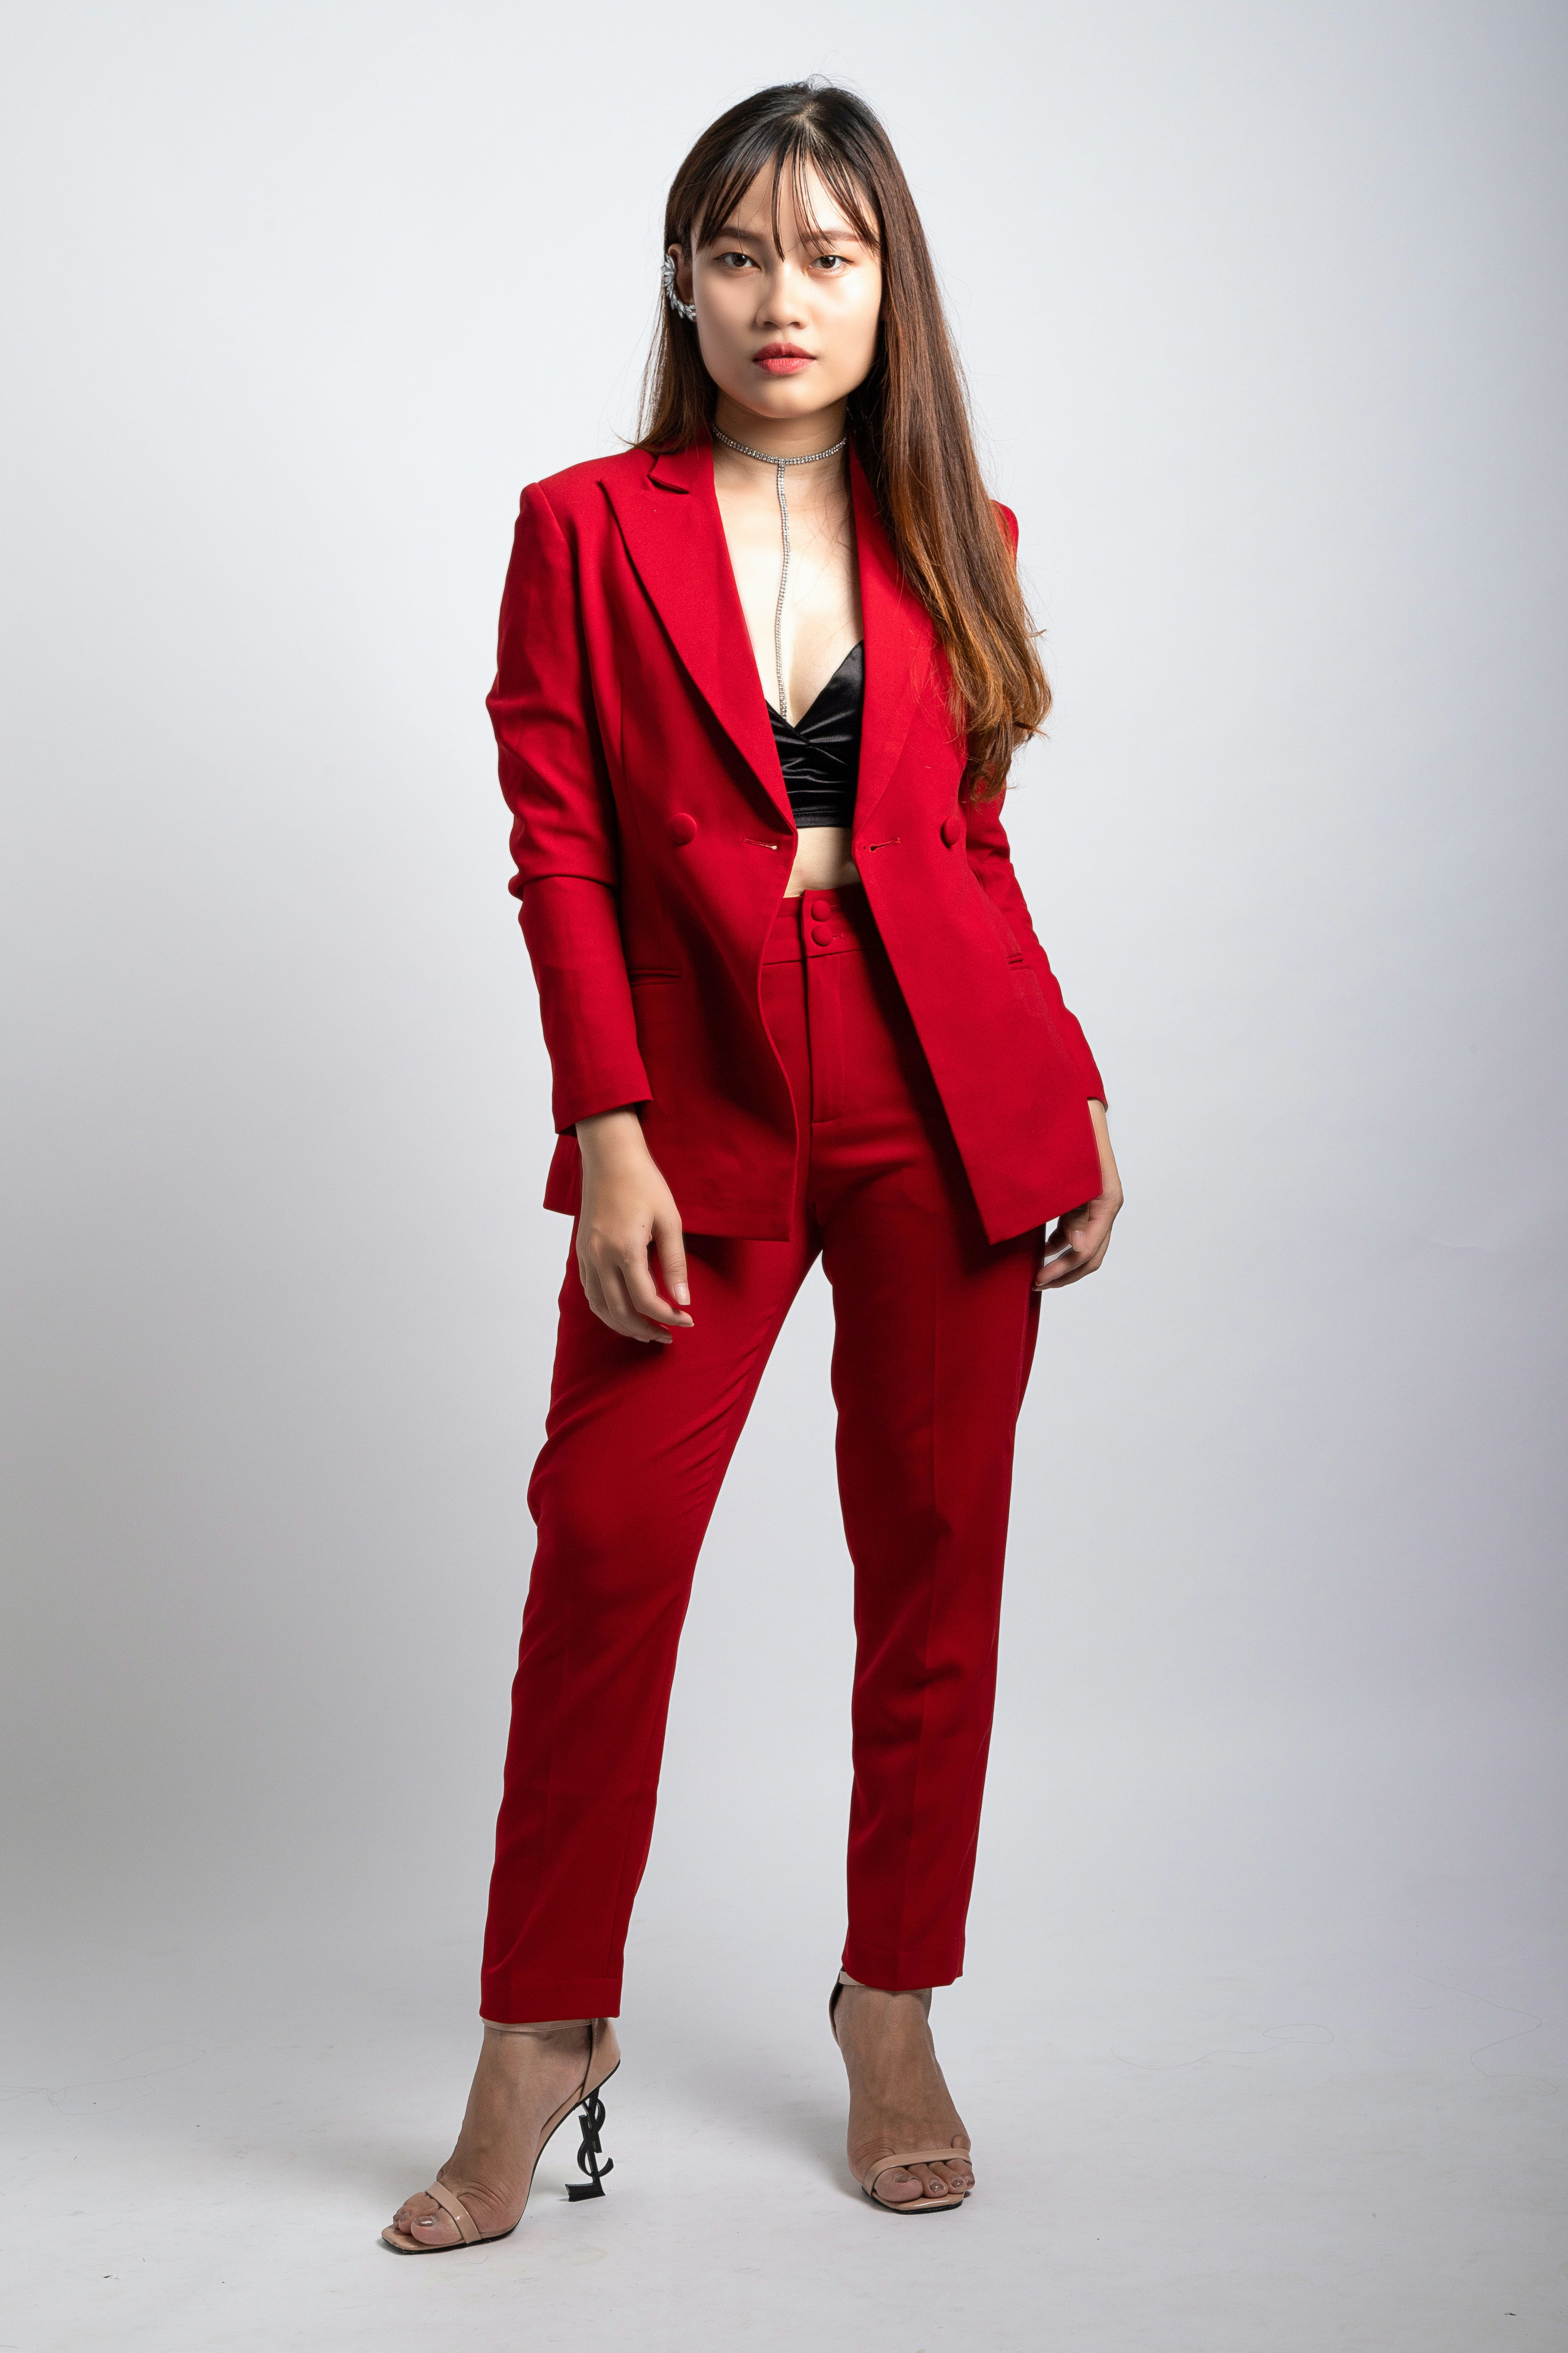 Woman Wearing Red Coat and Dress Pants Standing in Front of White Wallpaper